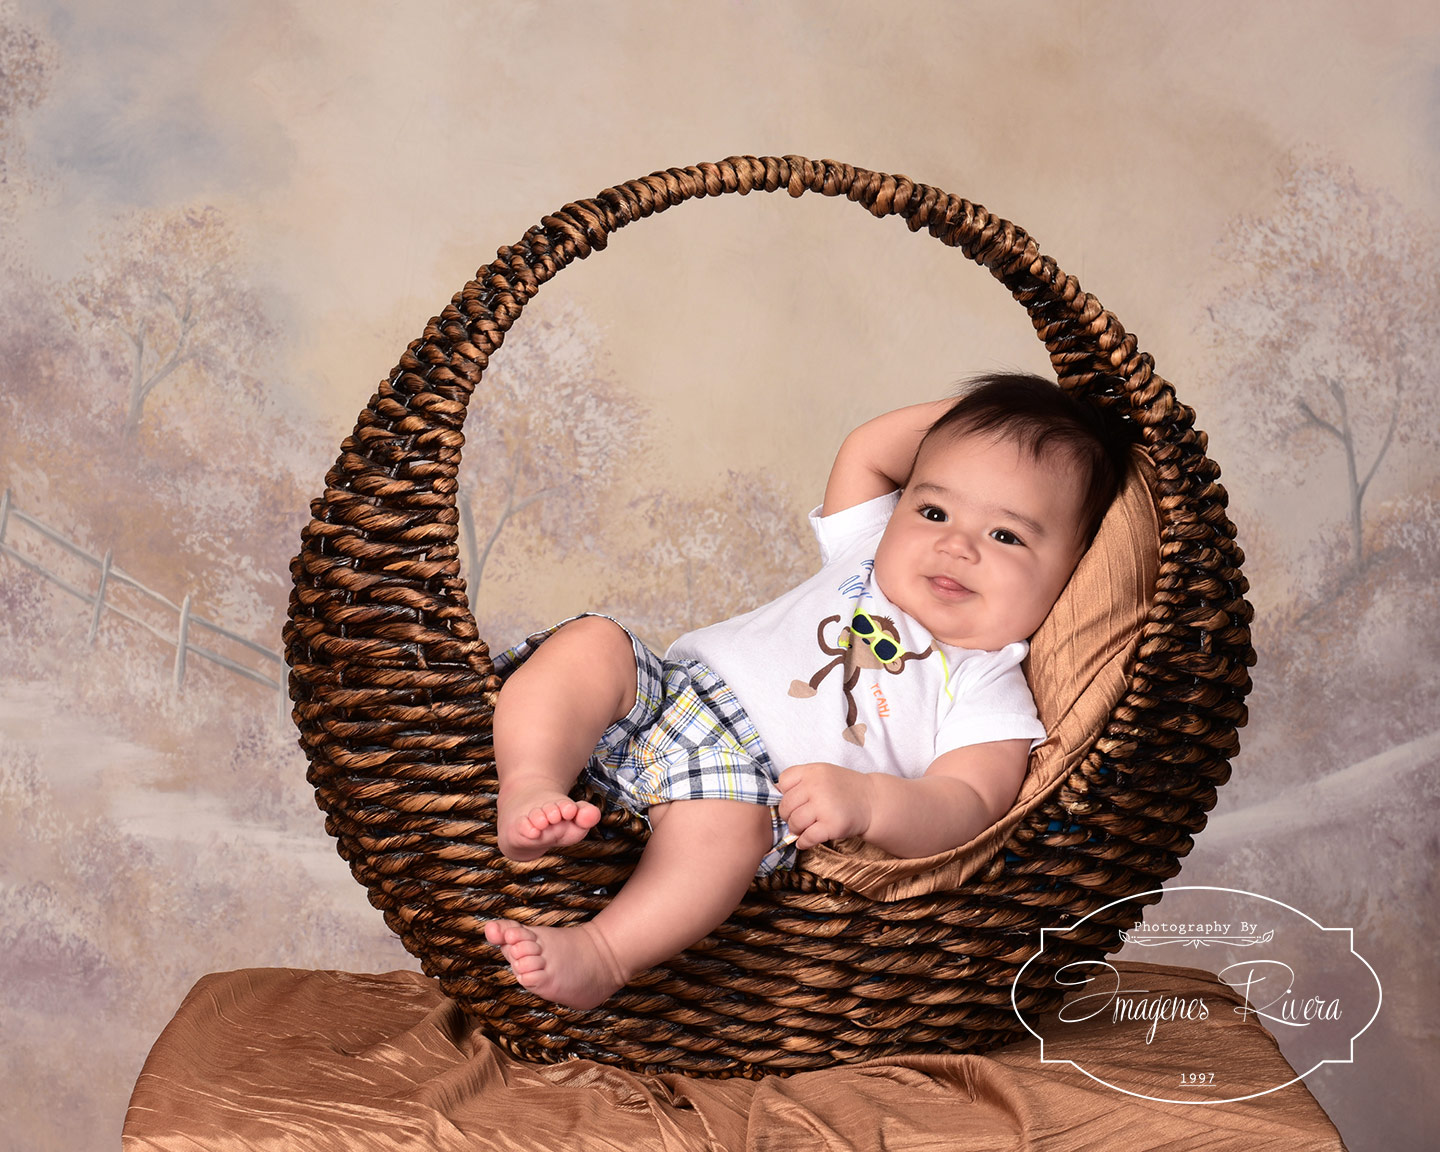 ♥ Watch me grow mini session | Baby Photographer Imagenes Rivera ♥